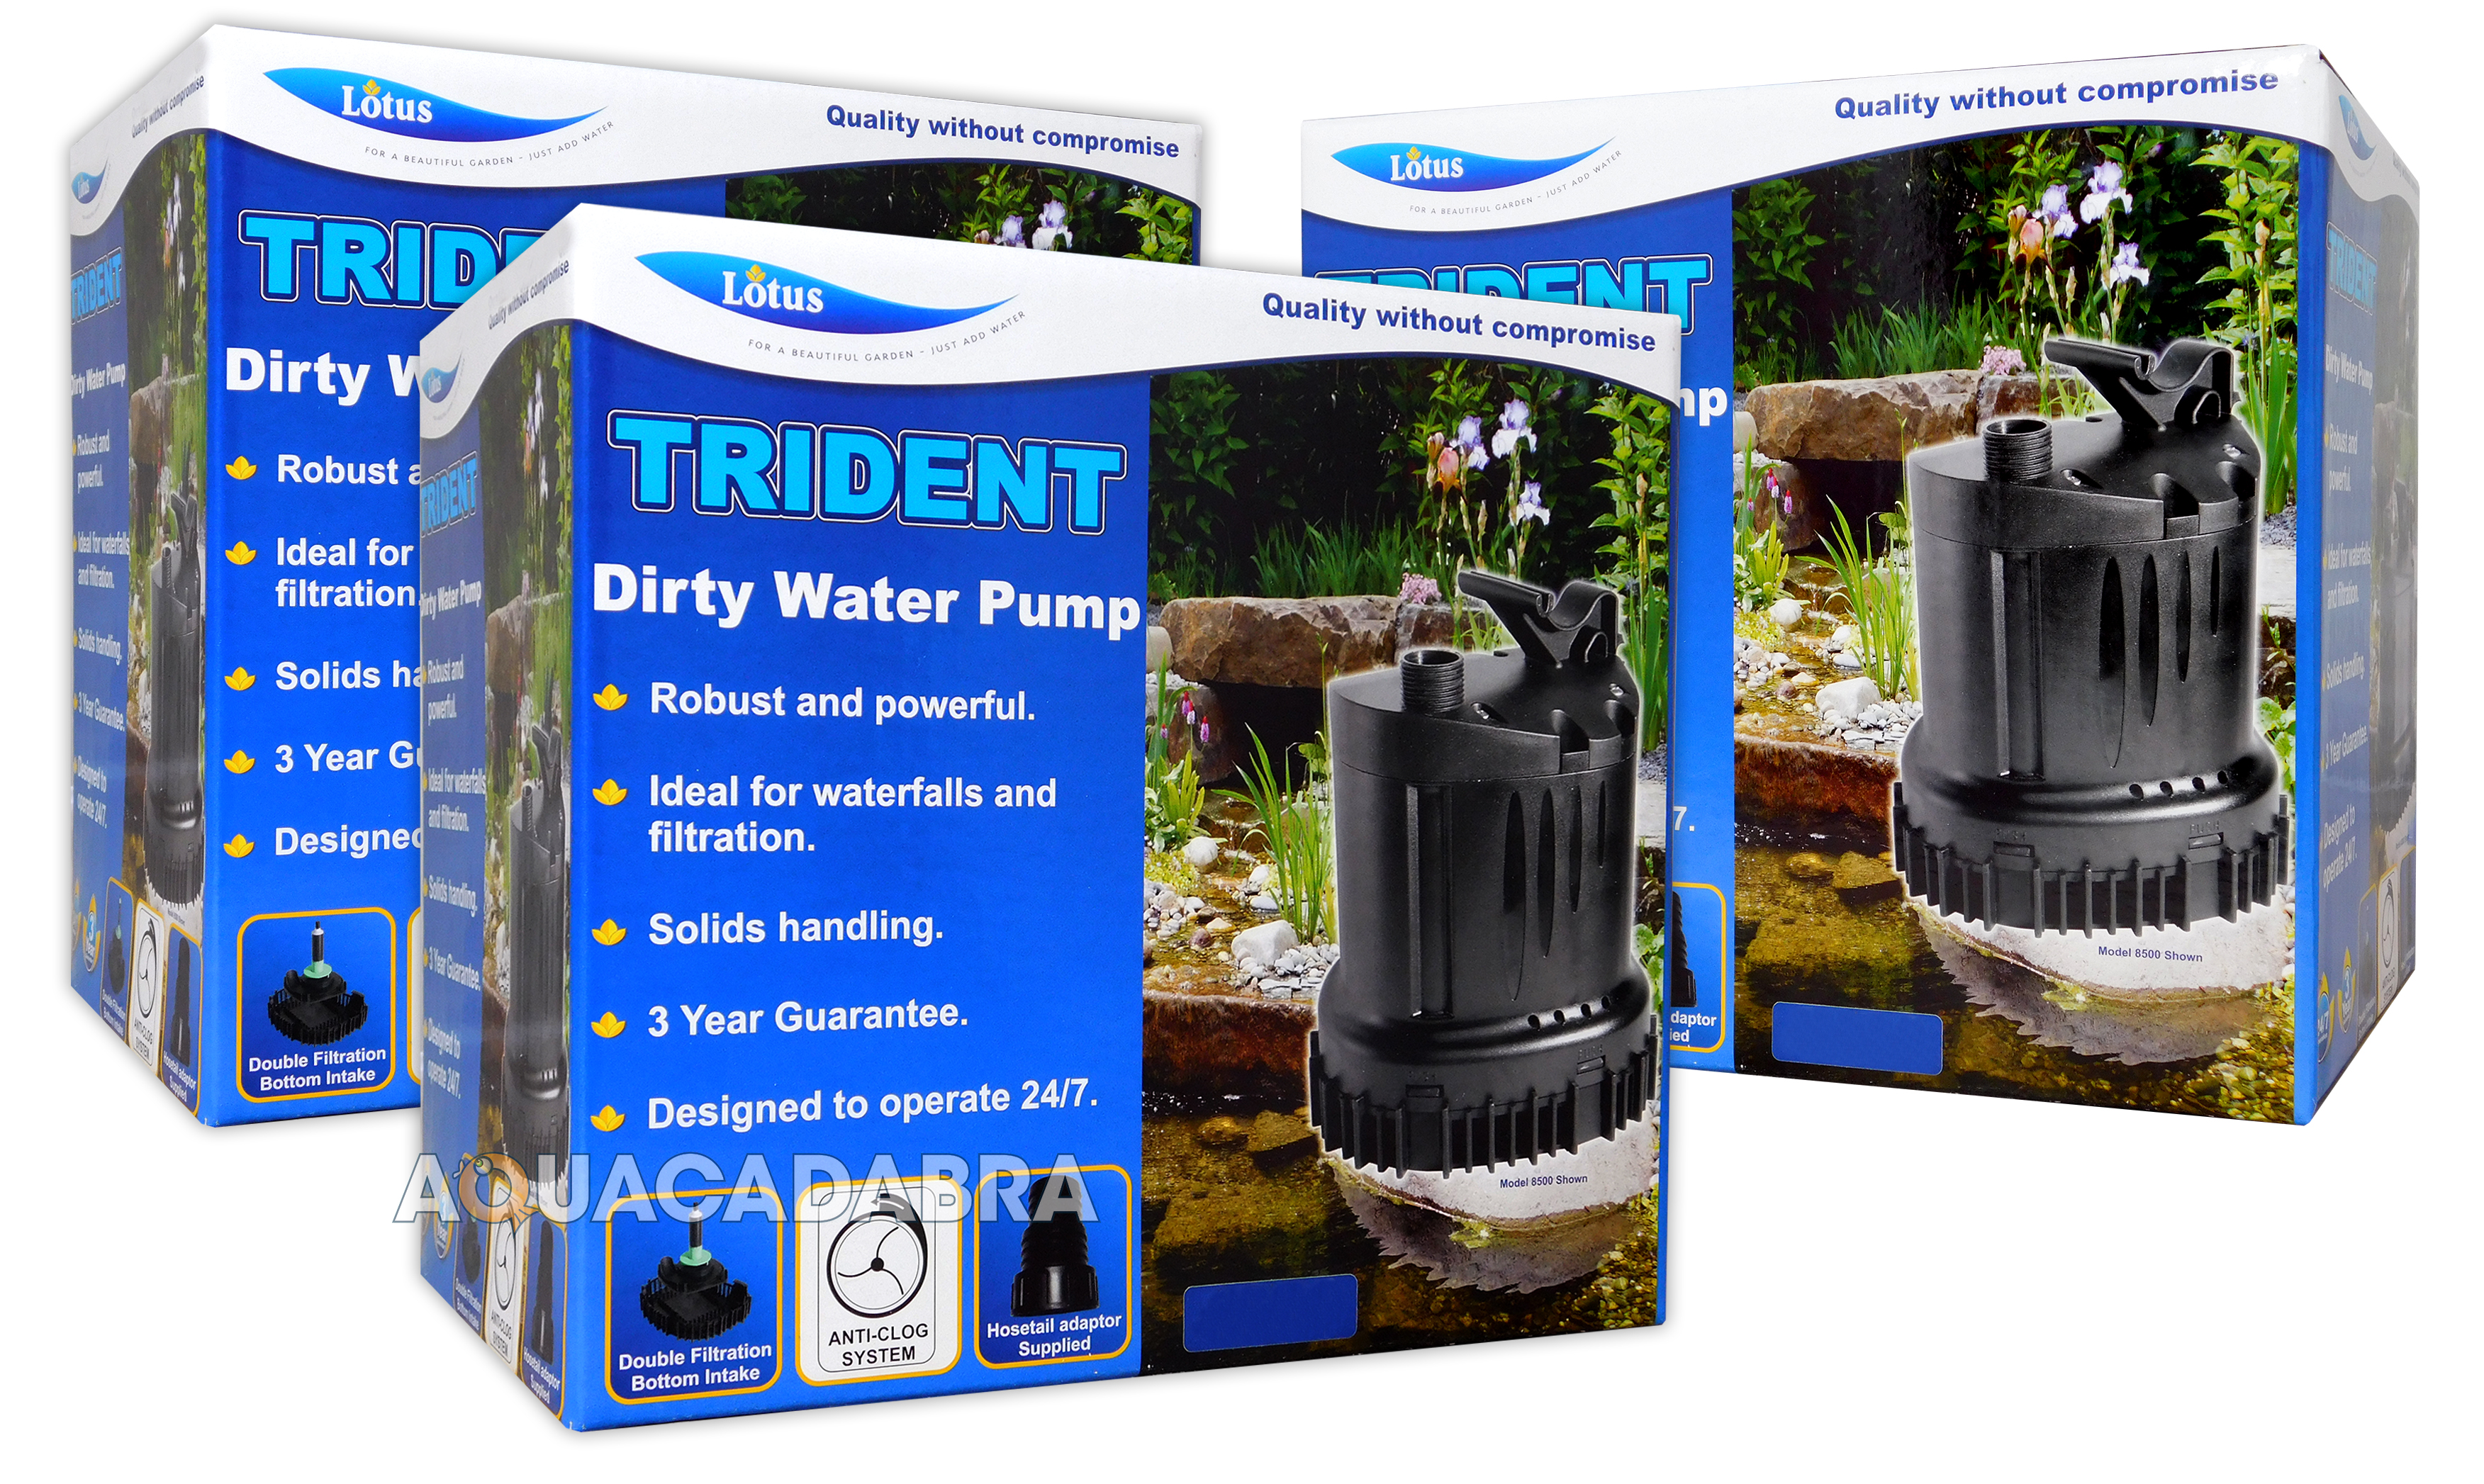 LOTUS TRIDENT DIRTY WATER PUMPS POWERFUL FILTER HANDLES SOLIDS ...